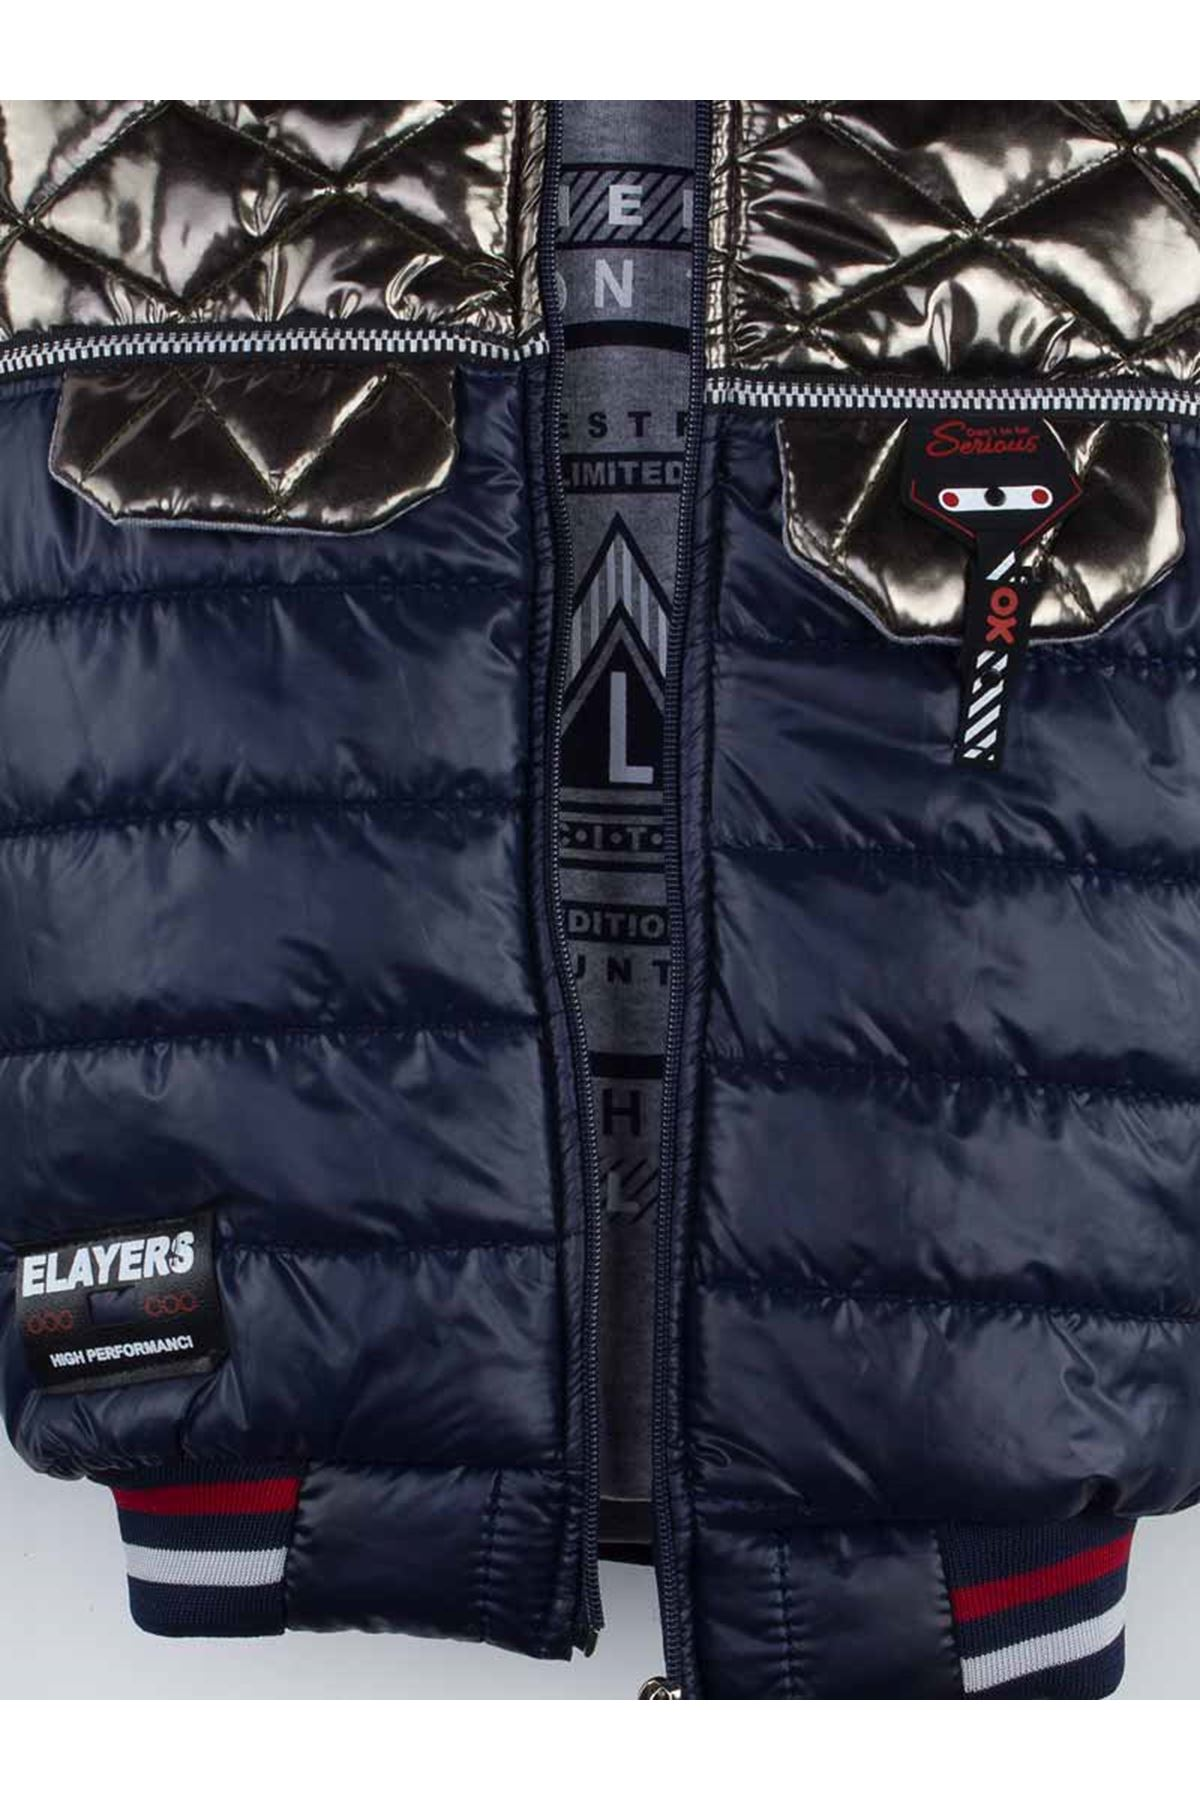 Navy blue-gray Size 3-piece suit bottom tracksuit top sweat hooded inflatable vest cotton casual daily seasonal model